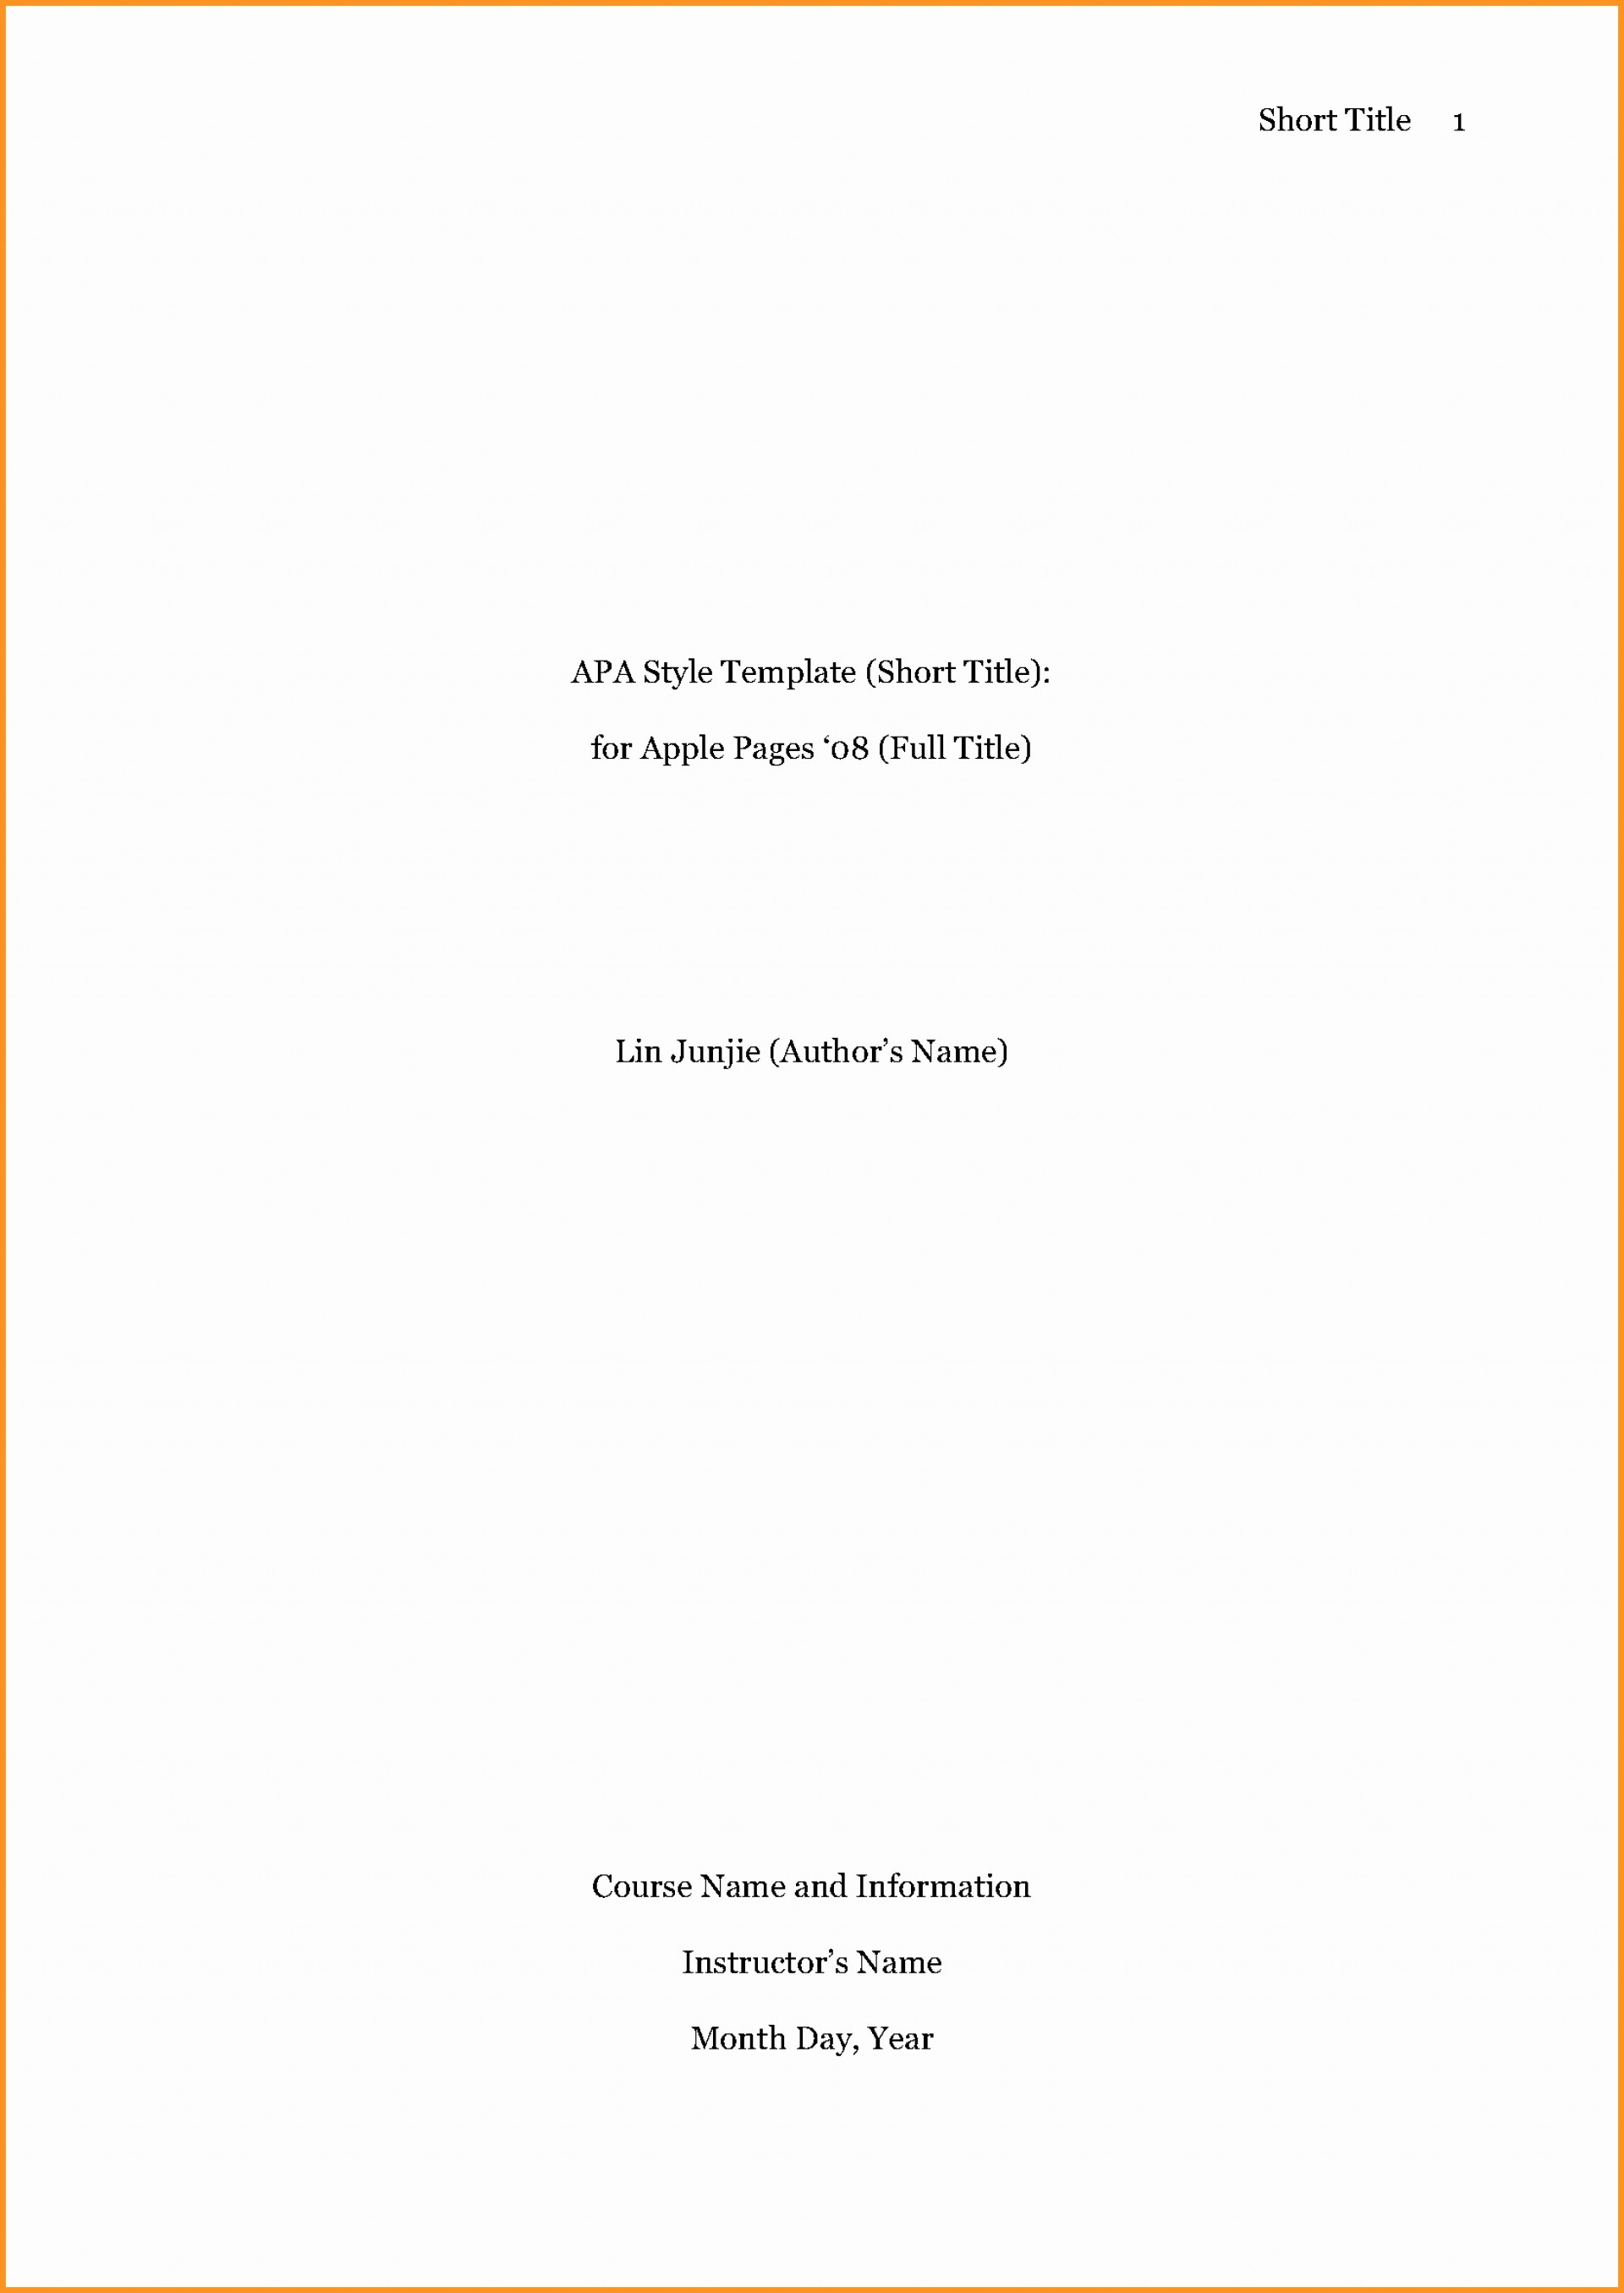 019 Research Paper Cover Sheet Apa Format Page Fresh Sample Titles Bamboodownunder Formidable Title For Doc Mla Example 1920